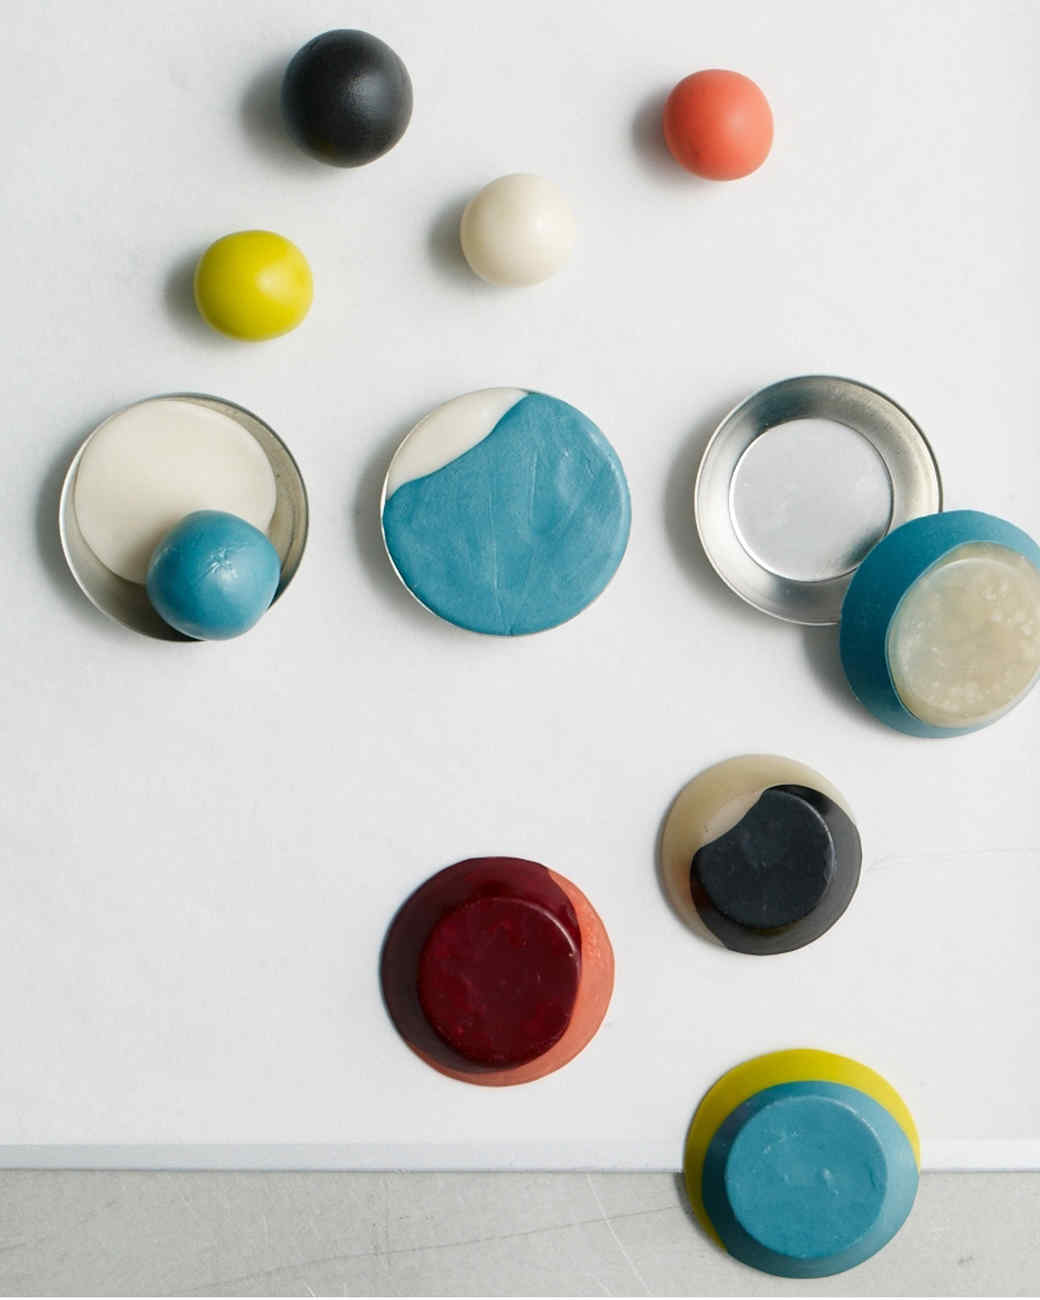 Polymer Clay 101: Working with Molds